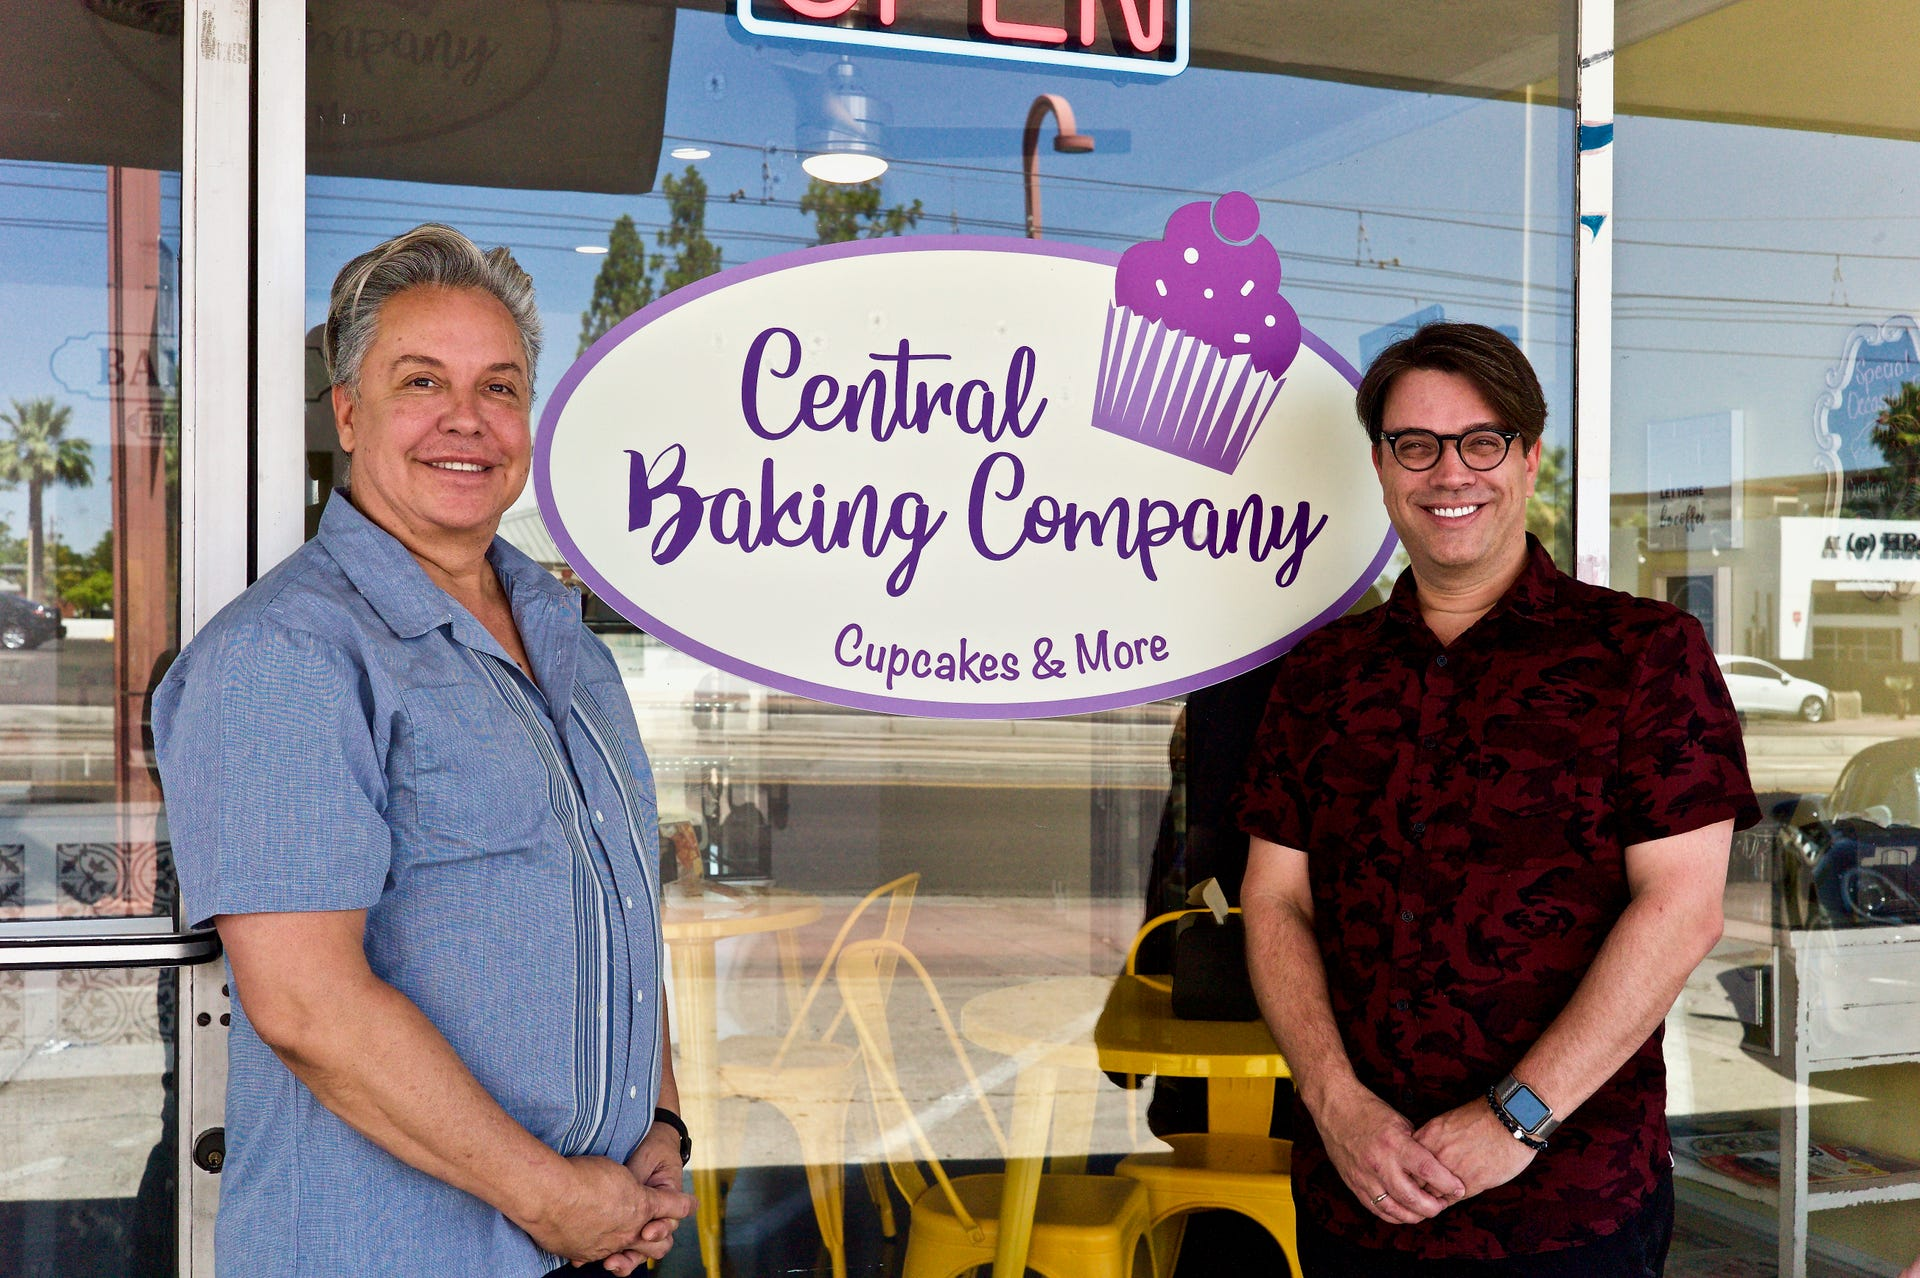 Drew Gomez (left) and John Pagoto opened Central Baking Company next door to their Dilemma Hair Salon on Central Avenue, just south of Camelback Road, on Valentine's Day. (Photo: Jennifer Delgado)